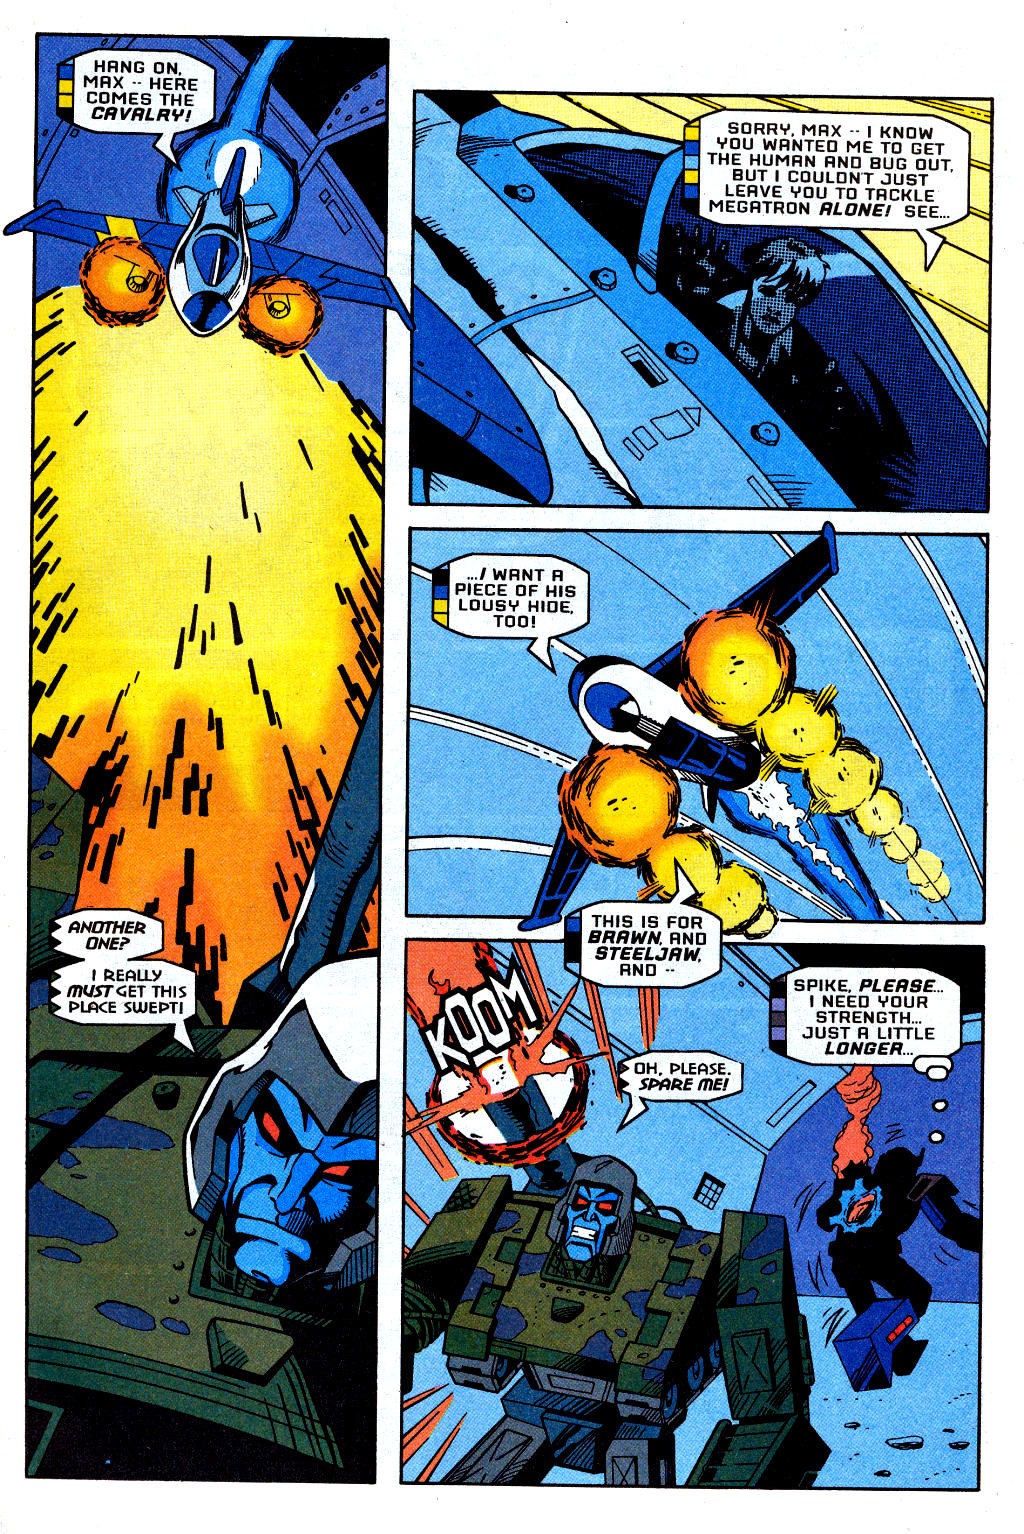 Read online Transformers: Generation 2 comic -  Issue #2 - 14